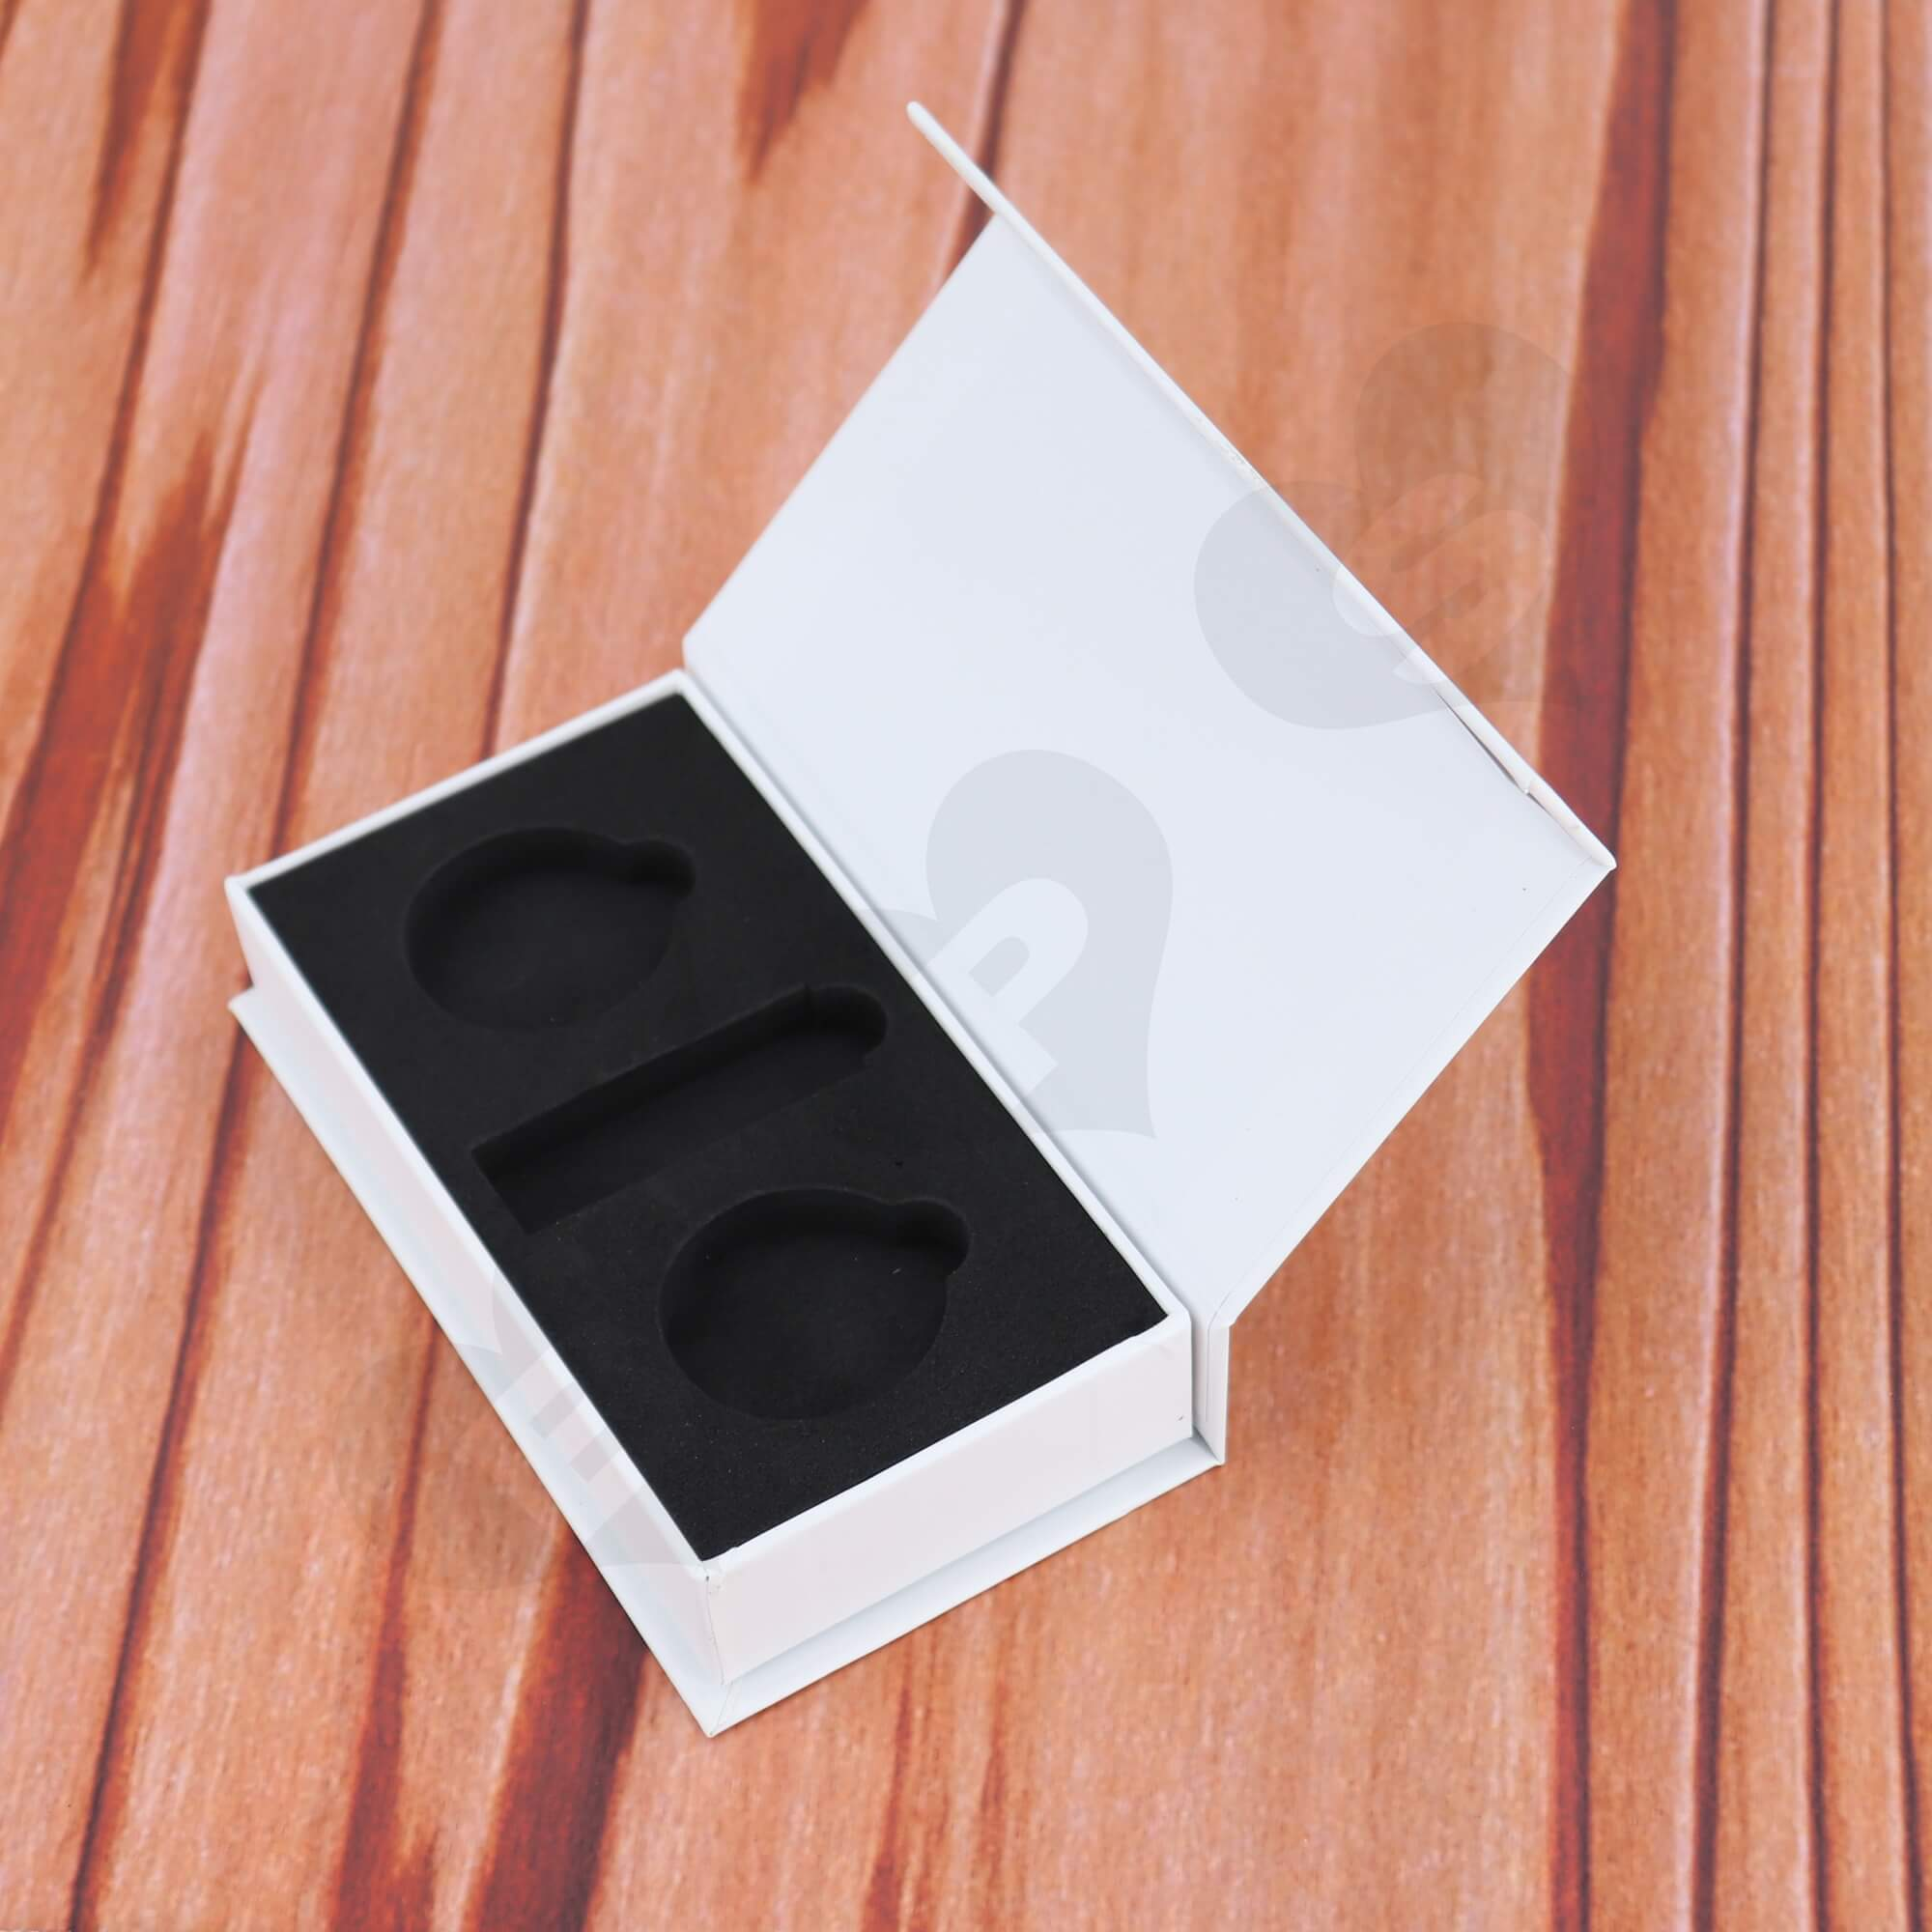 Cardboard Magnetic Closure Box Flocked EVA Foam For Packing Bathroom Supplies Side View Two